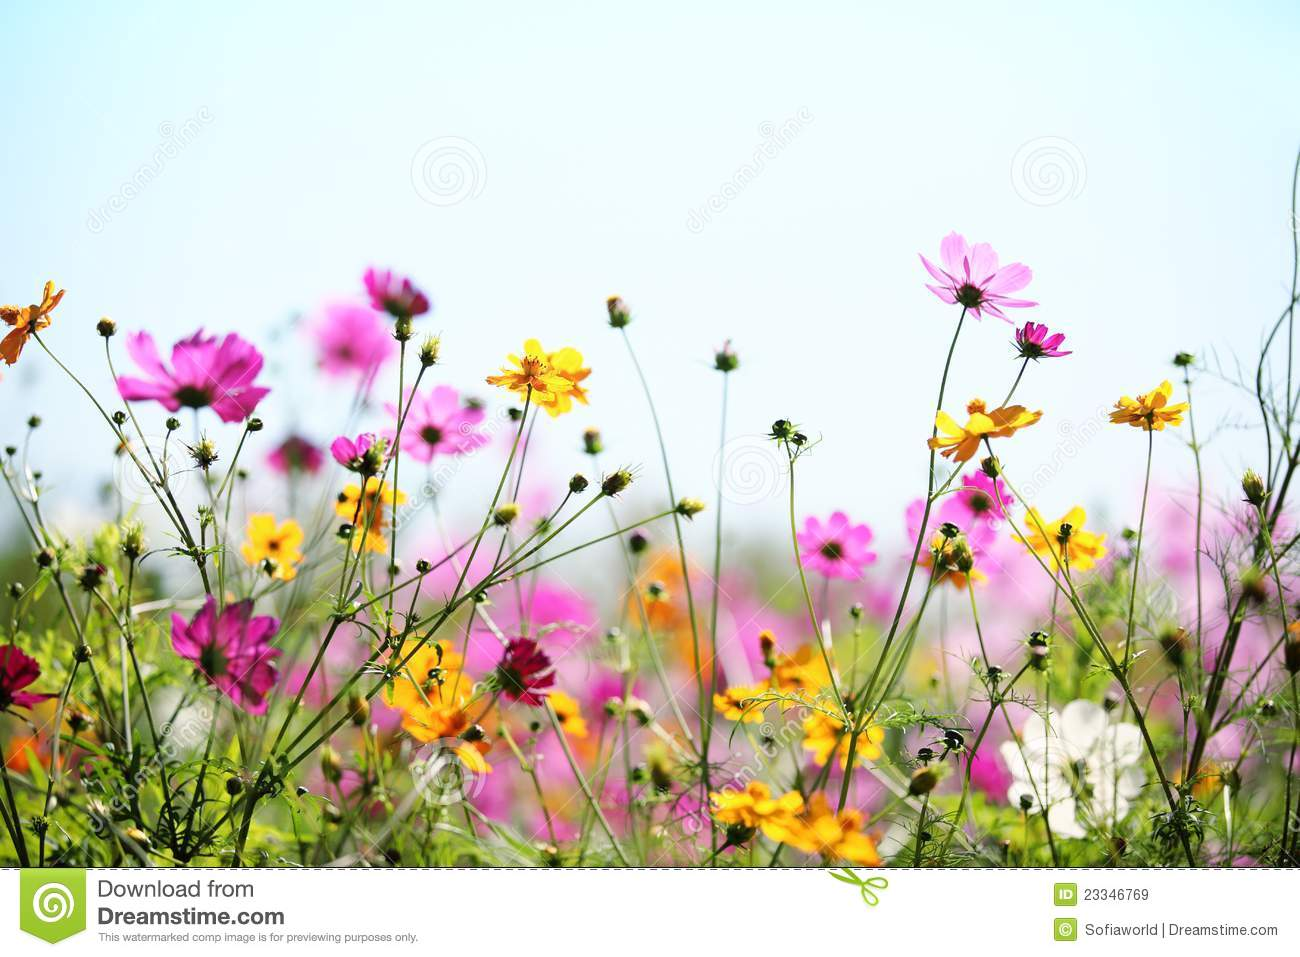 Spring flowers photos free png royalty free Free images spring flowers - ClipartFest png royalty free